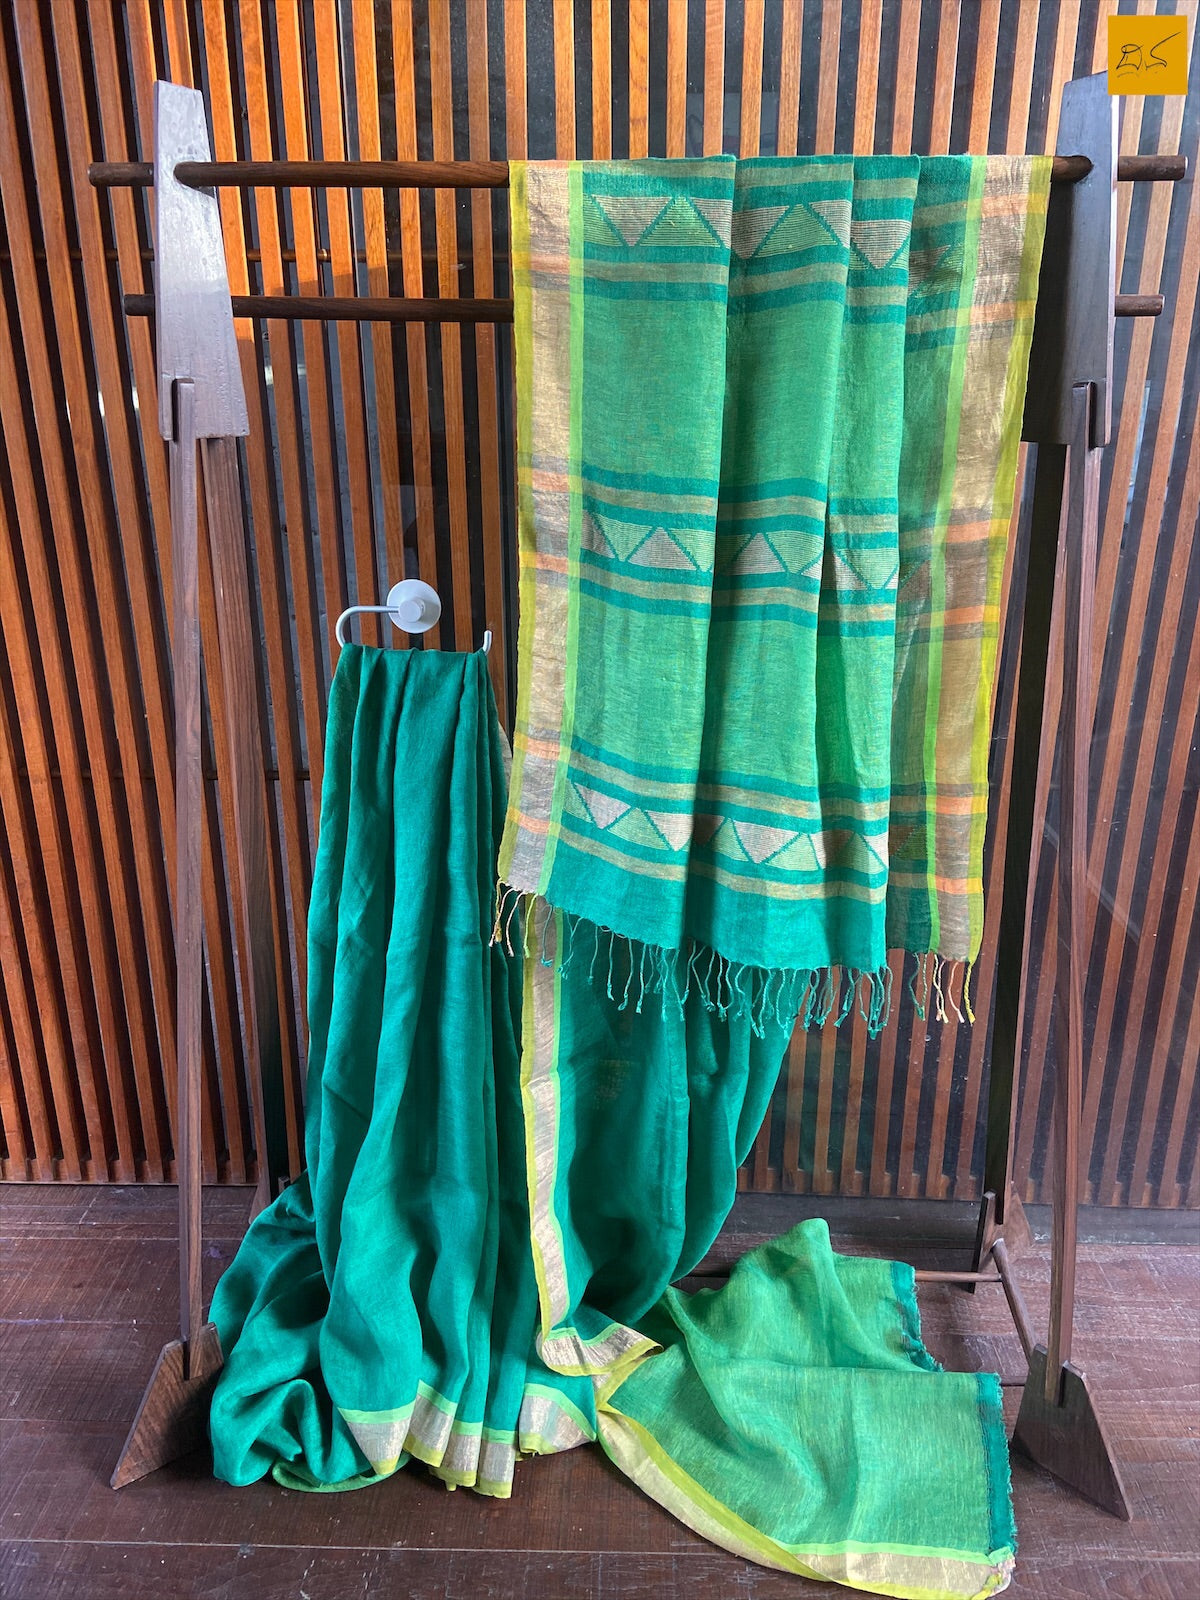 Isn't it hard to let it go! A comfy, dressy greel pure linen handwoven saree is looking for your wardrobe. Own it!! This is a gorgeous Linen handwoven Saree with a green body. New trend of Saree designs, Saree for artists, art lovers, architects, saree lovers, Saree connoisseurs, musicians, dancers, doctors, linen saree, indian saree images, latest sarees with price, only saree images, new saree design.